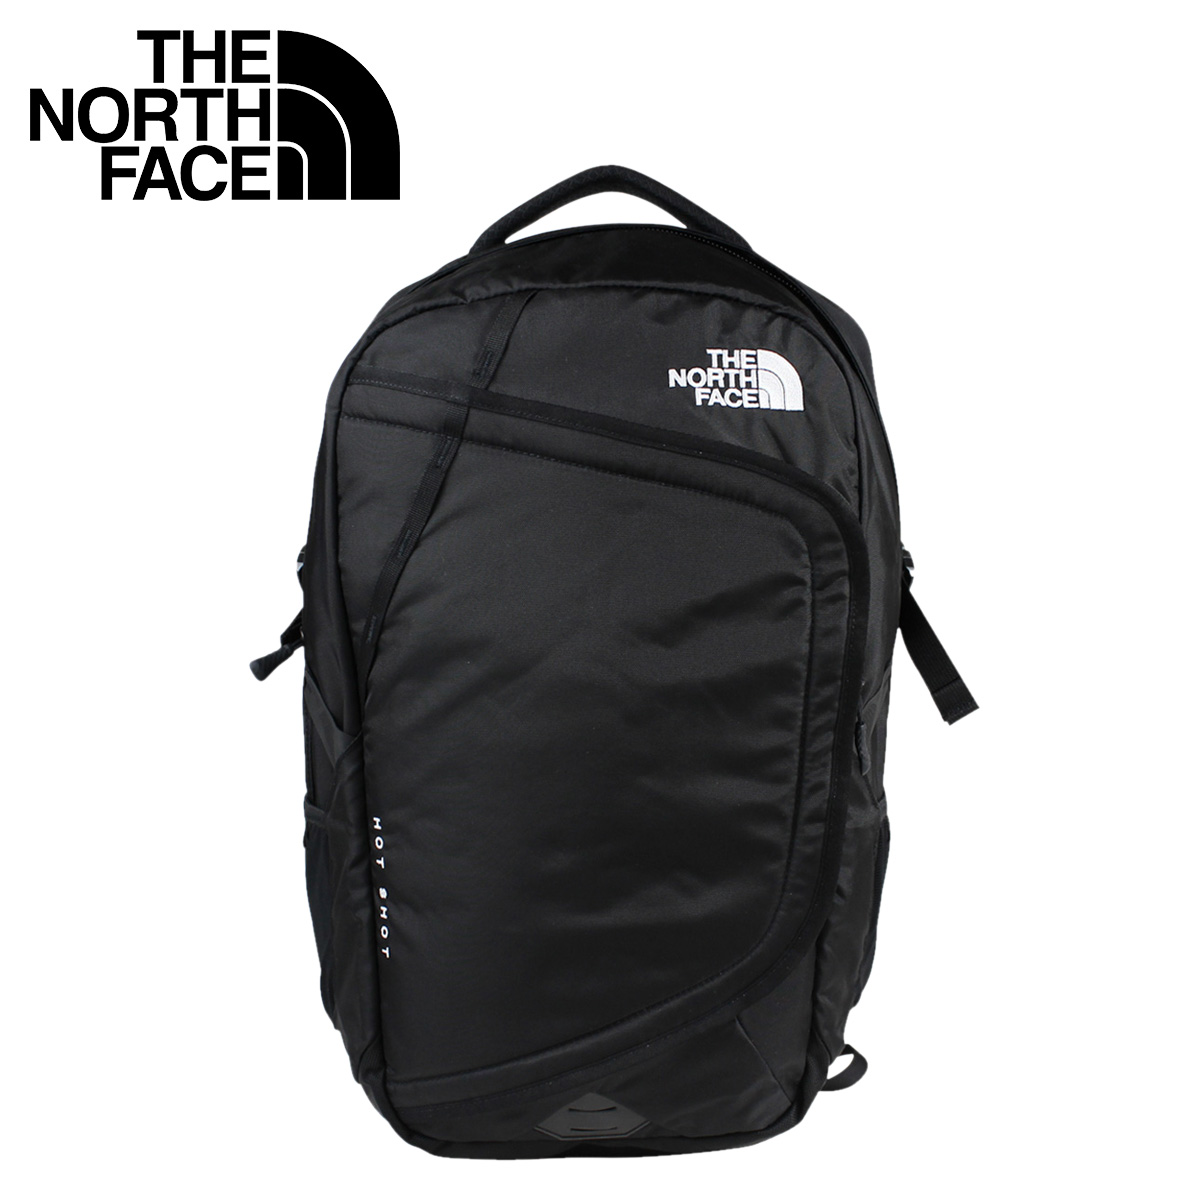 f27f437e7 THE NORTH FACE north face rucksack backpack HOT SHOT NF0A2RD6 mens ladies  [8/2 new in stock]